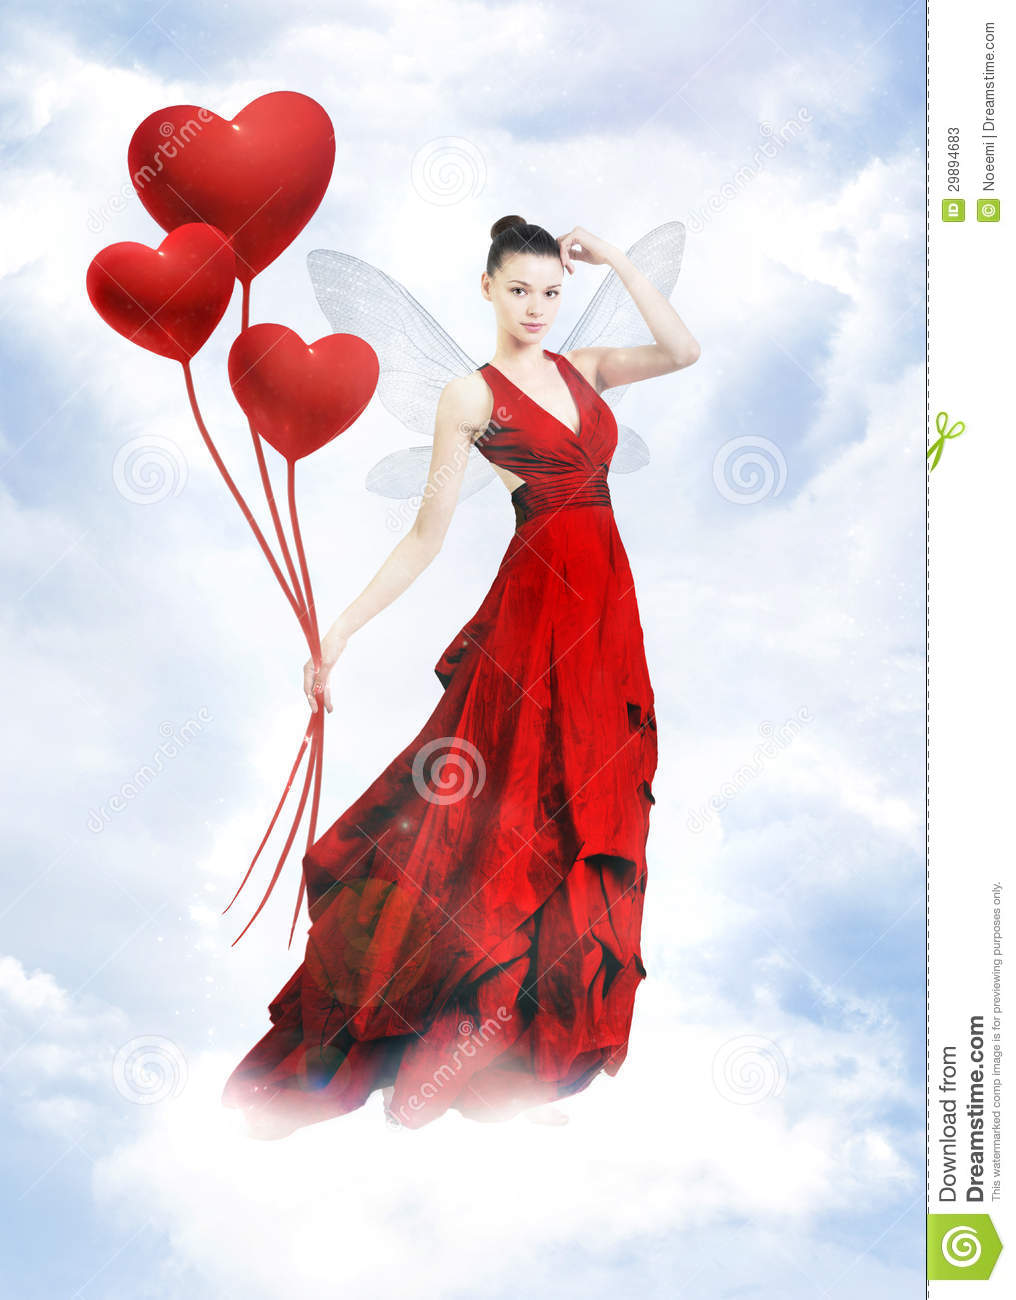 Atractive Love Fairy In Clouds Stock Image Image 29894683